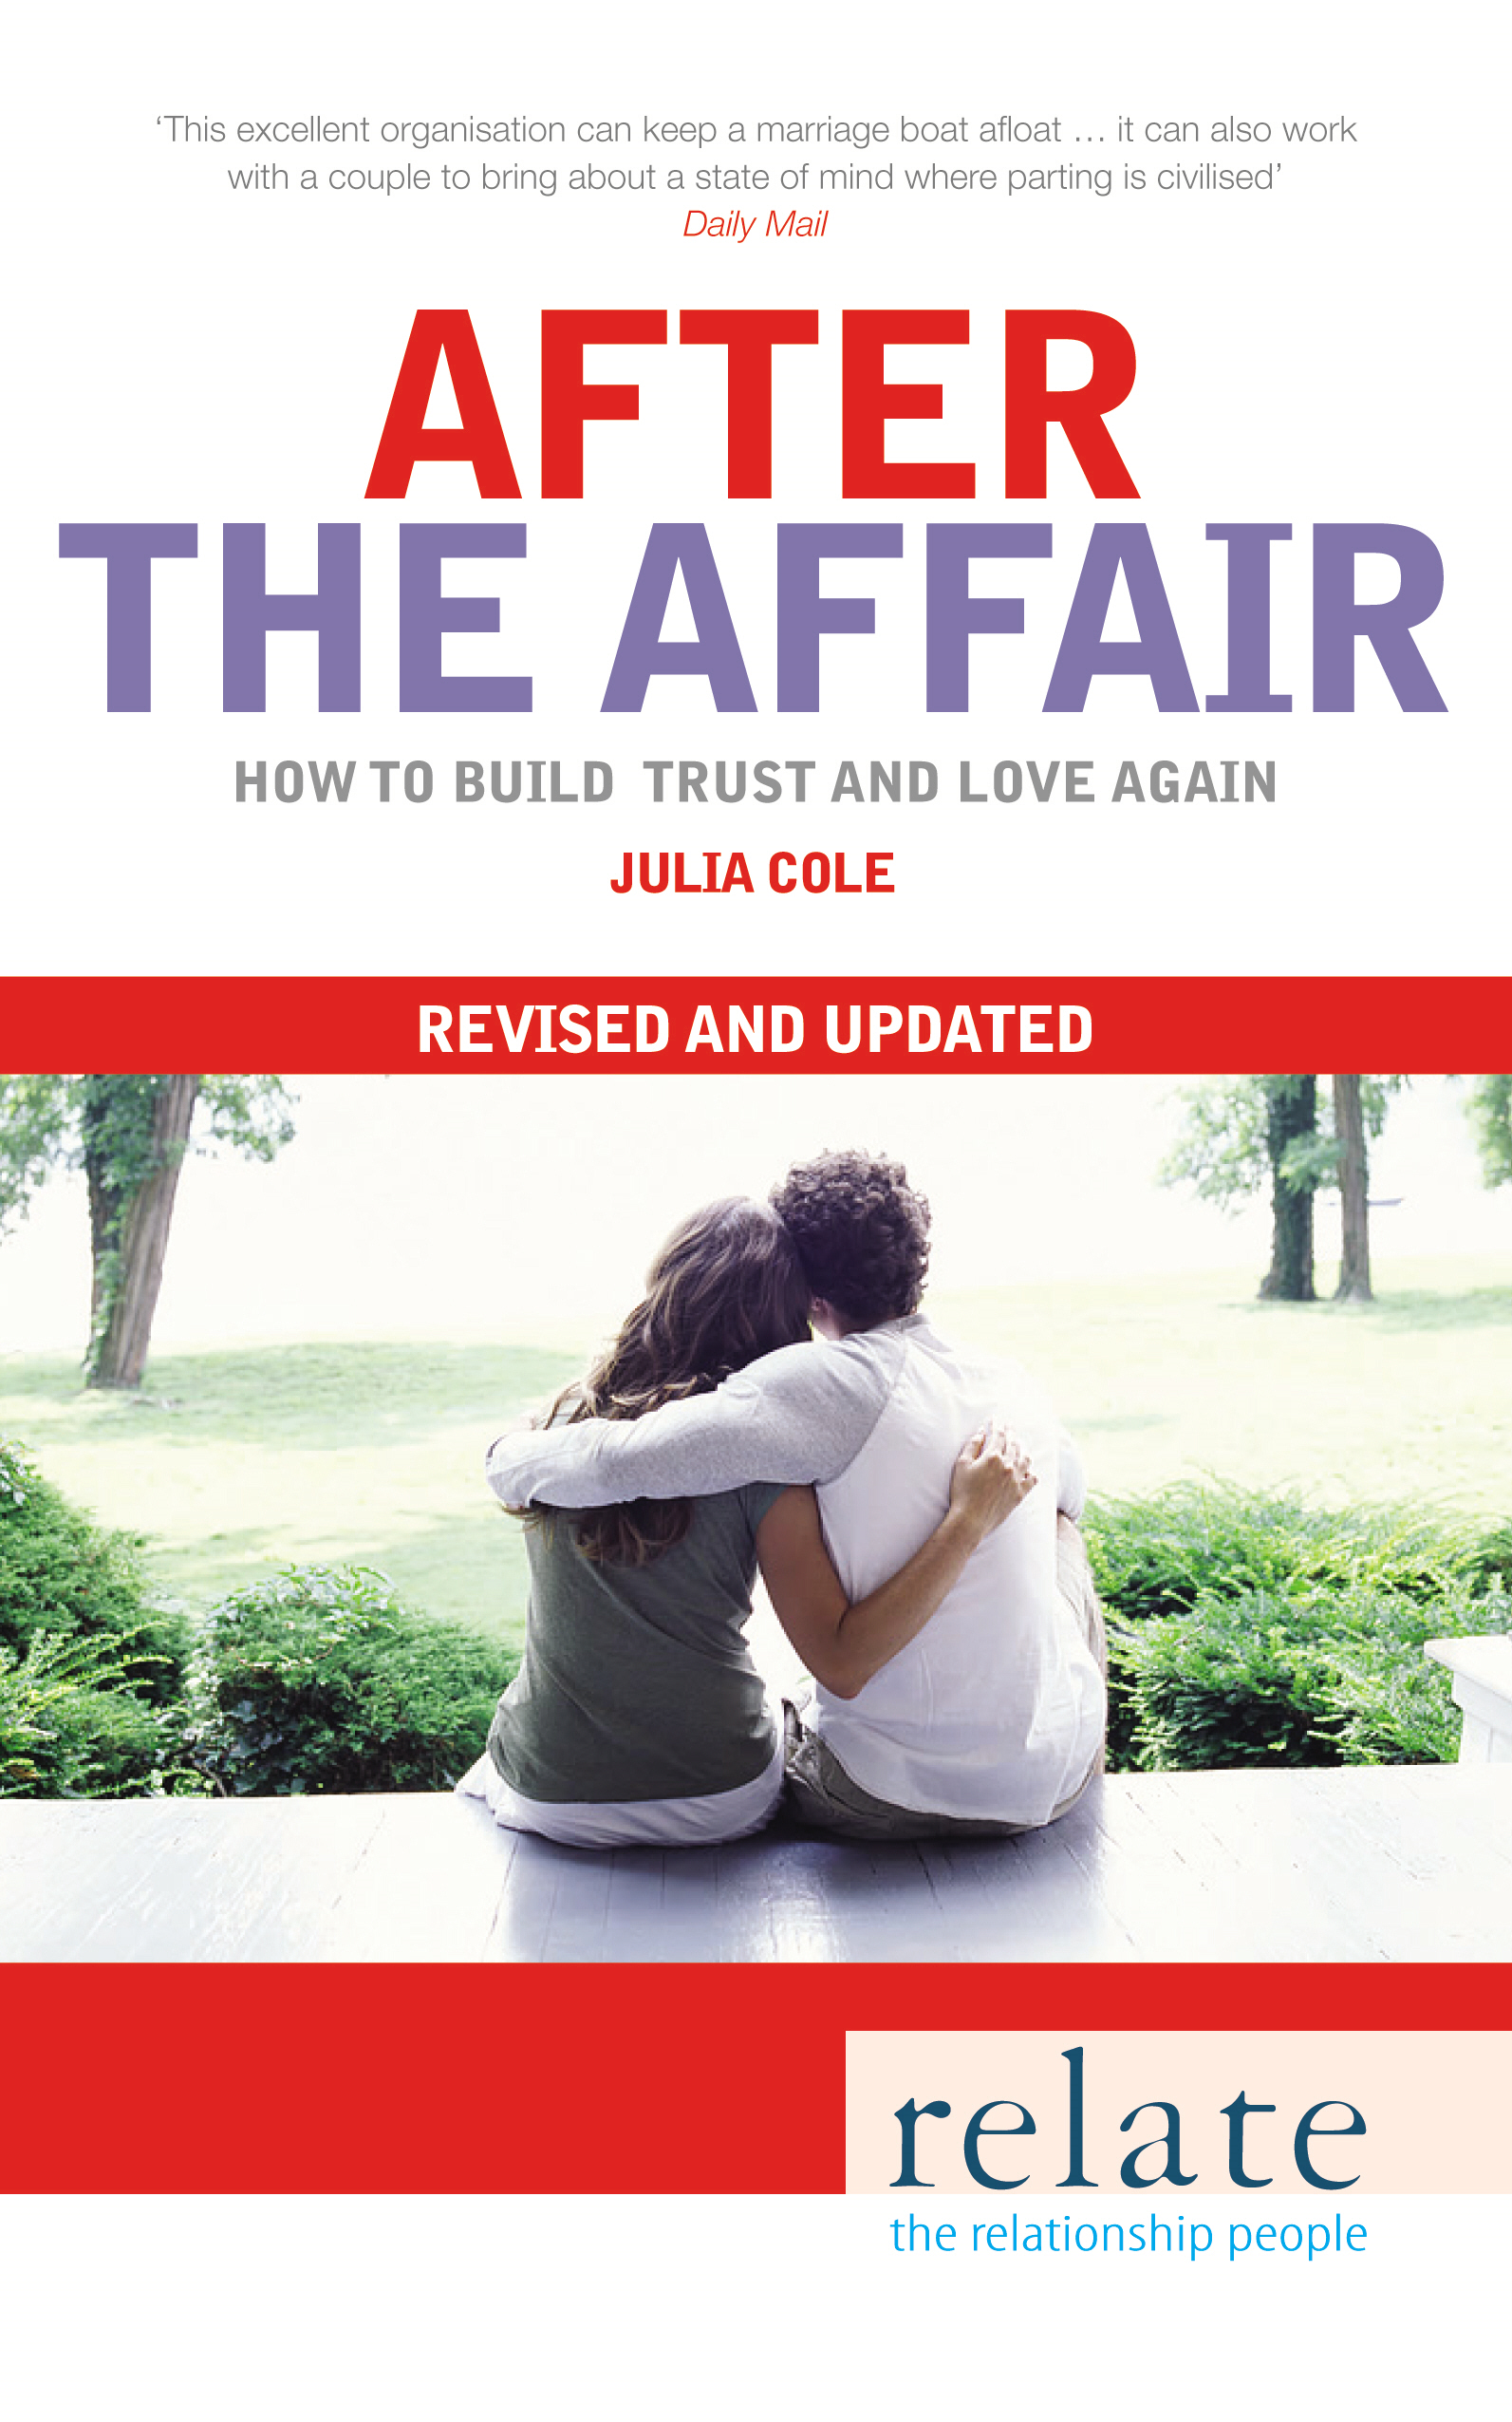 Relate - After The Affair How to build trust and love again